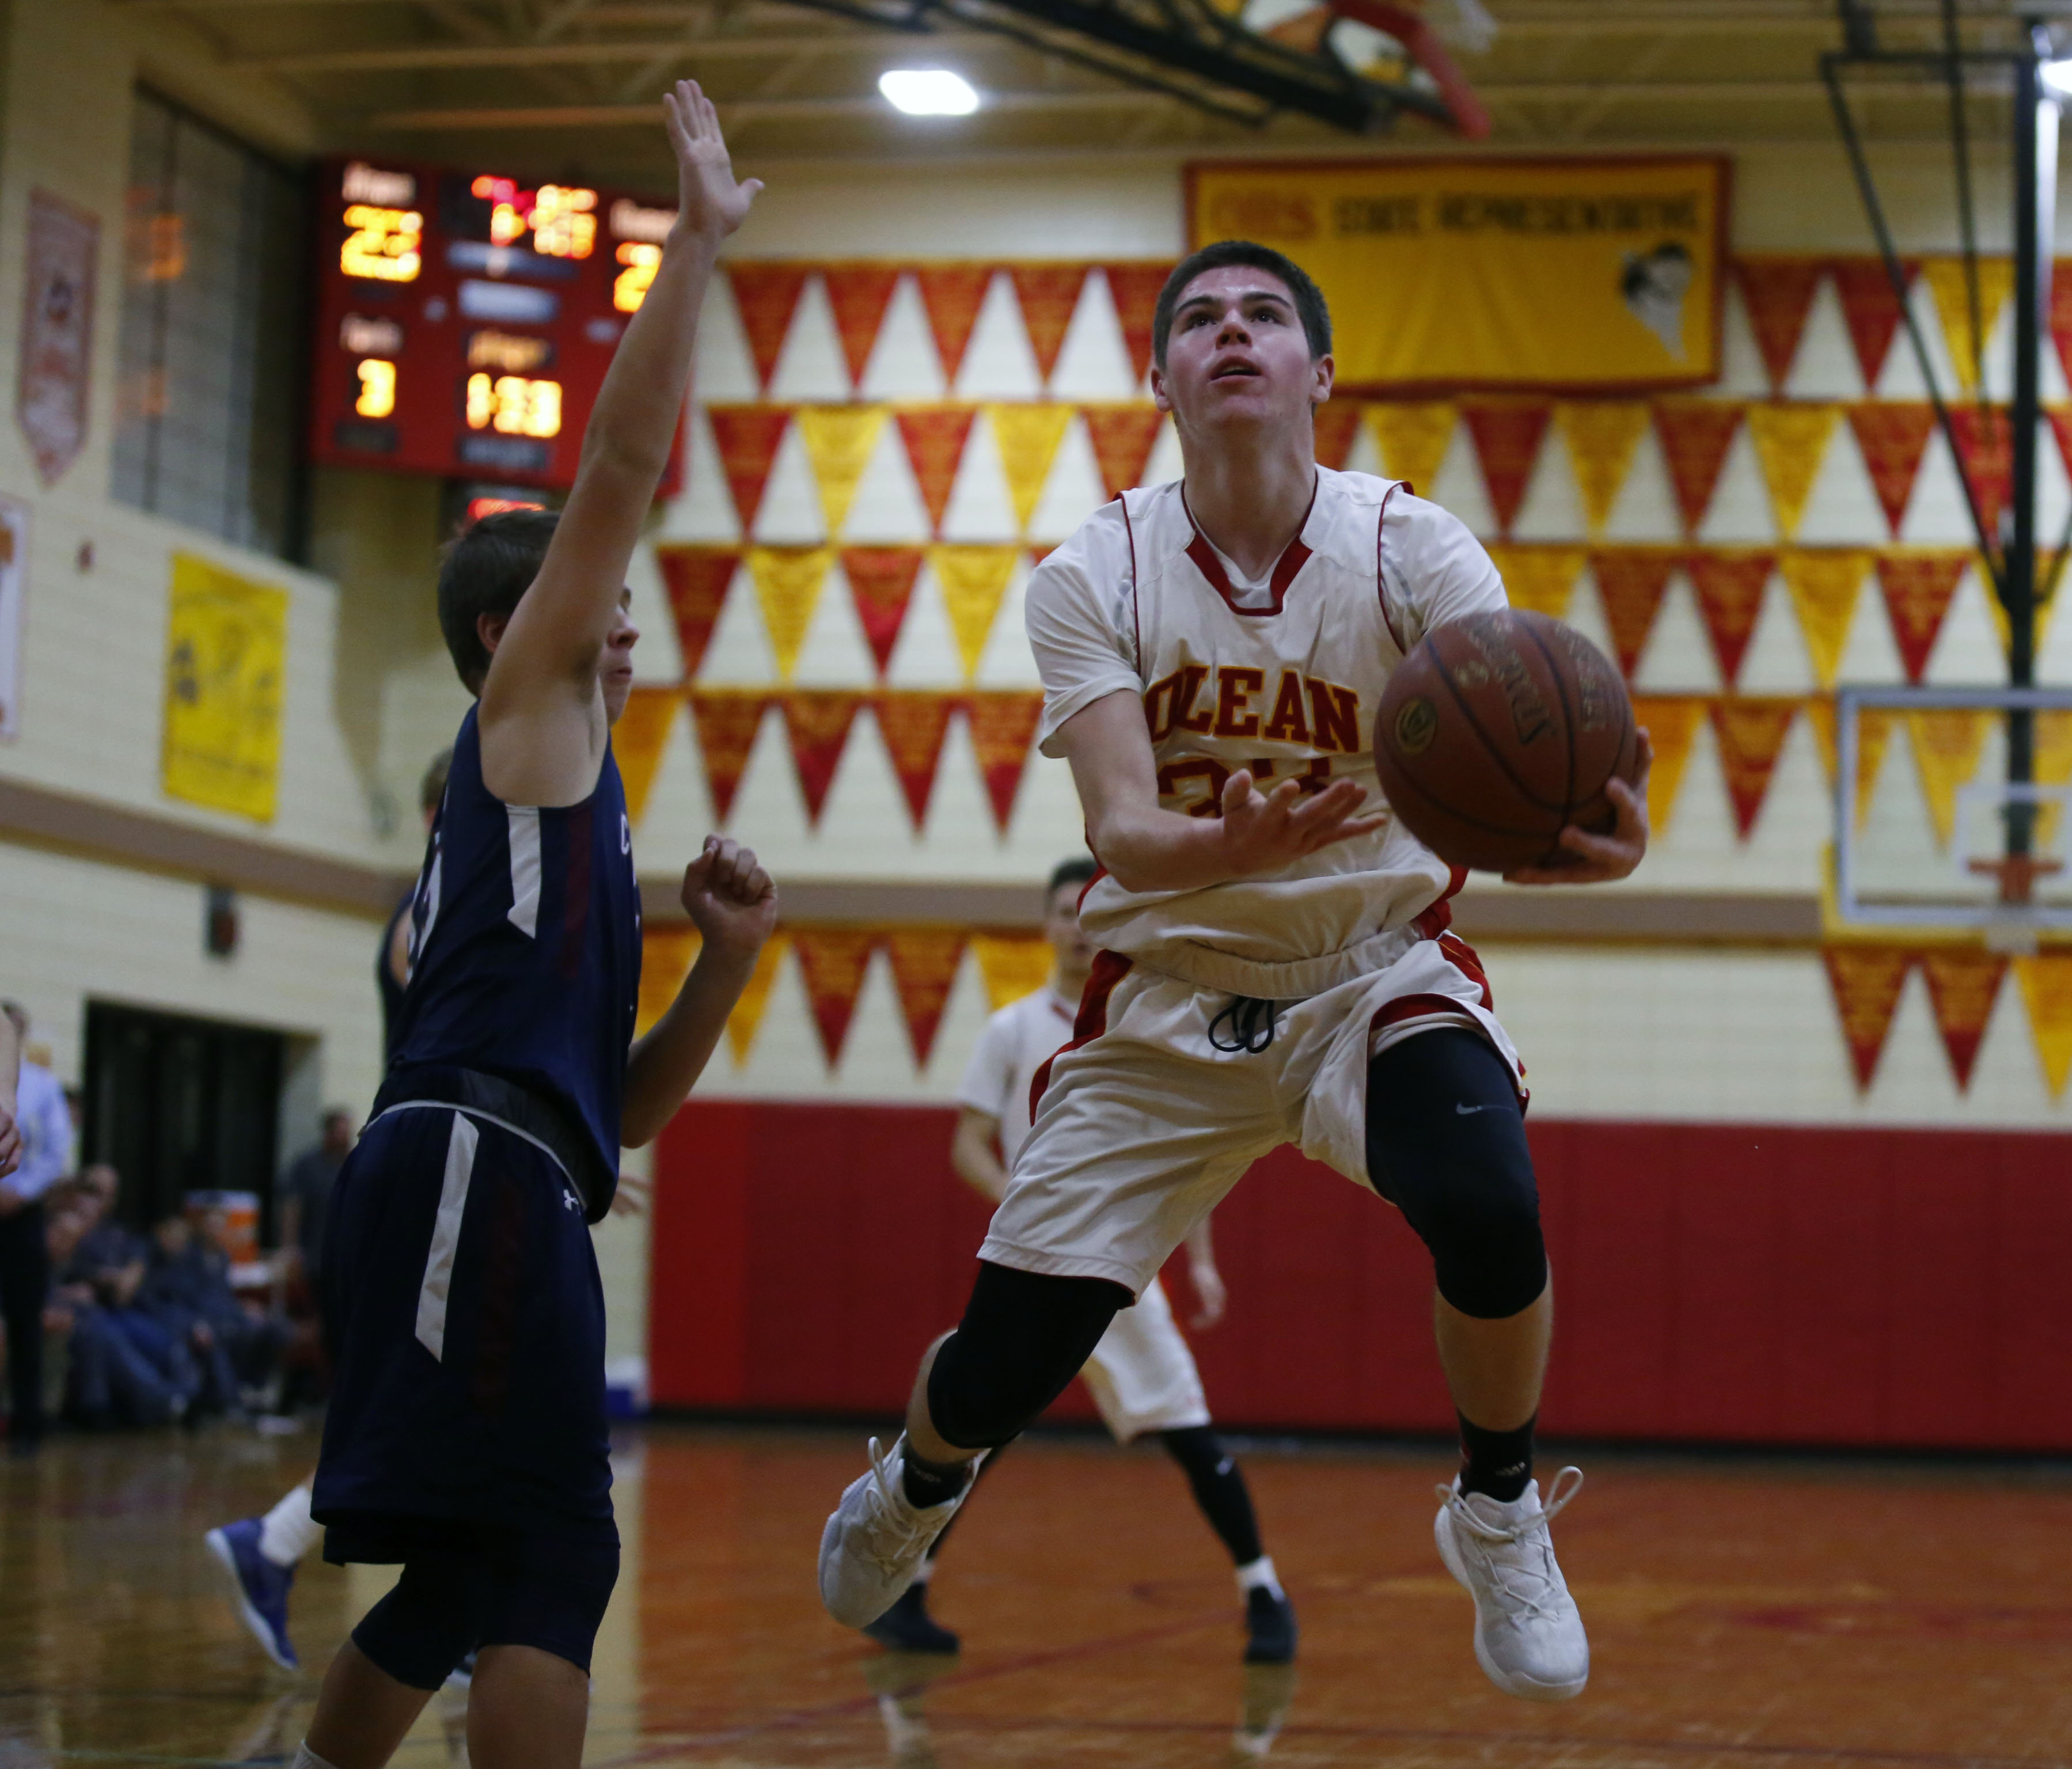 Olean's Mike Schmidt (right) and the Huskies are ranked in the top 10 among large schools in boys' baskeball. (Harry Scull Jr./Buffalo News)